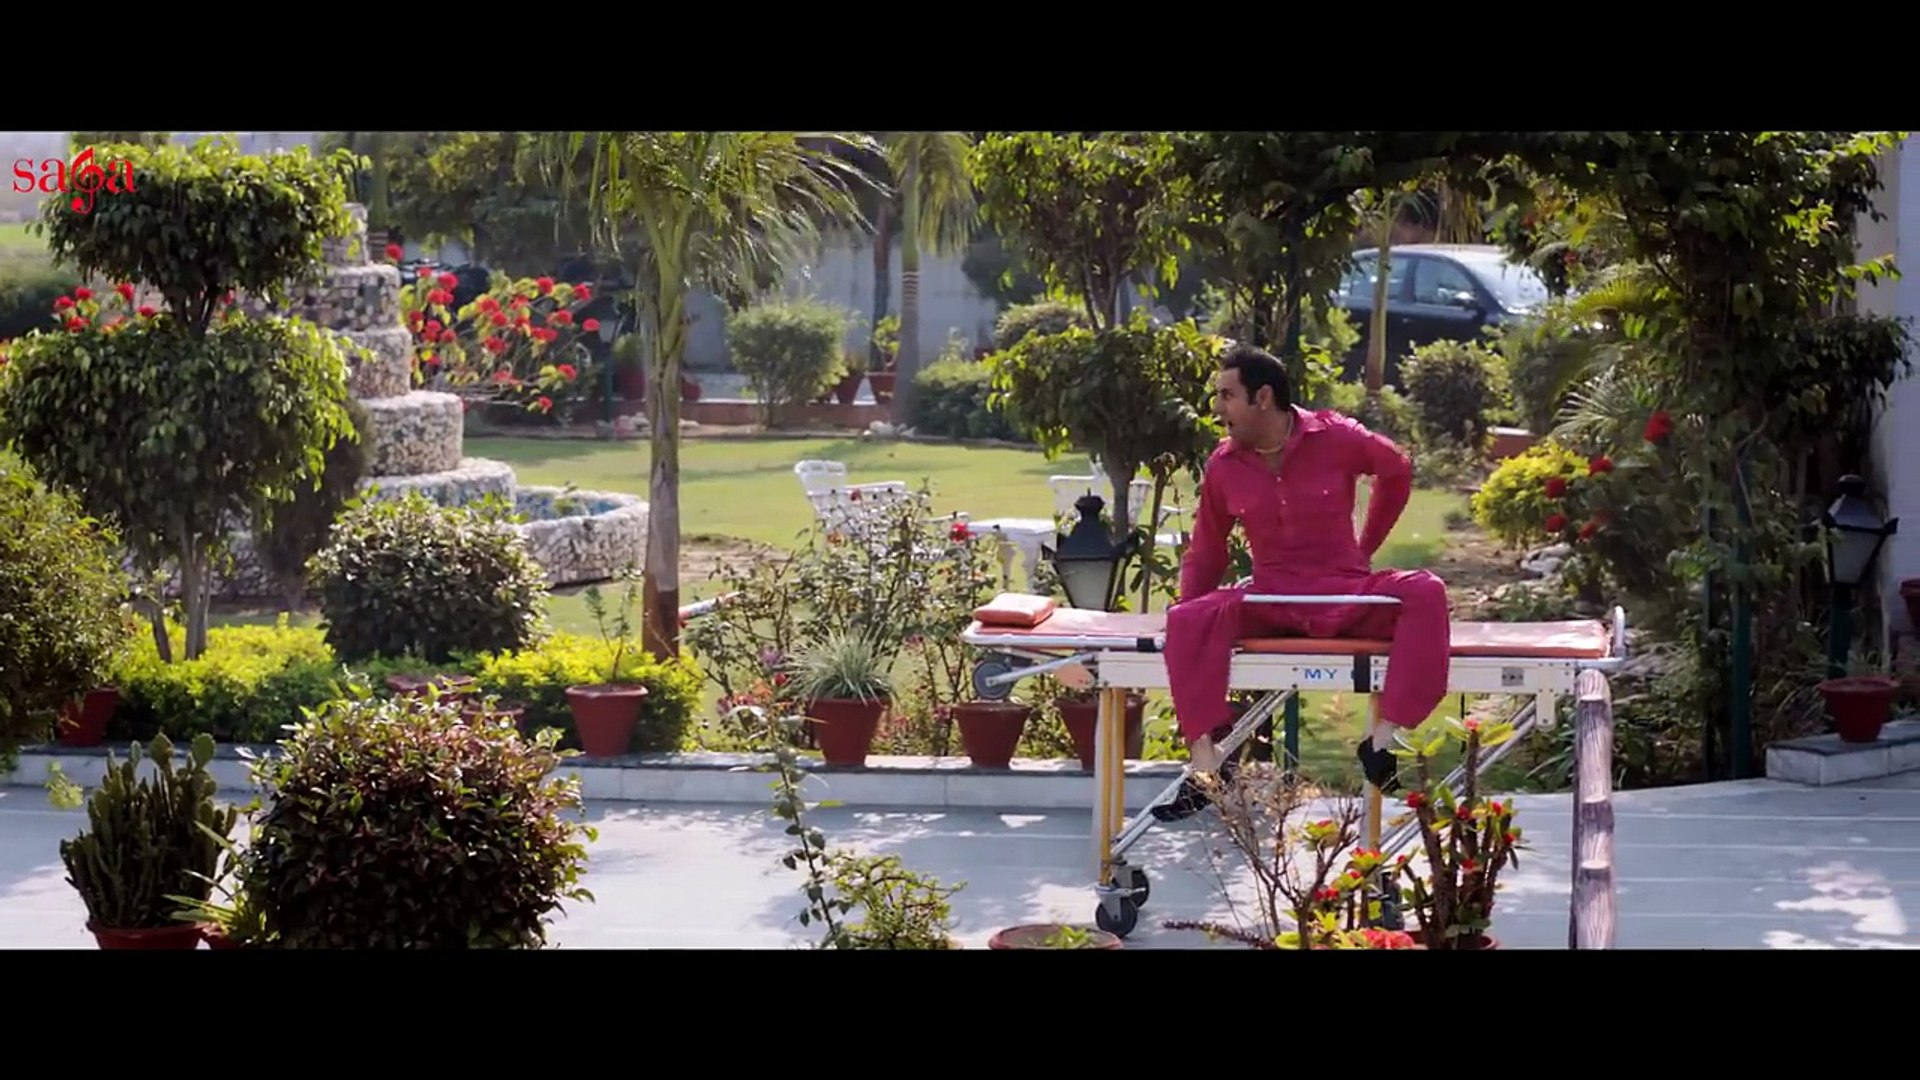 Best Of Punjabi Comedy | All Time Best Comedy Clips | Funny Punjabi Comedy Scenes 2015 | Sagahits